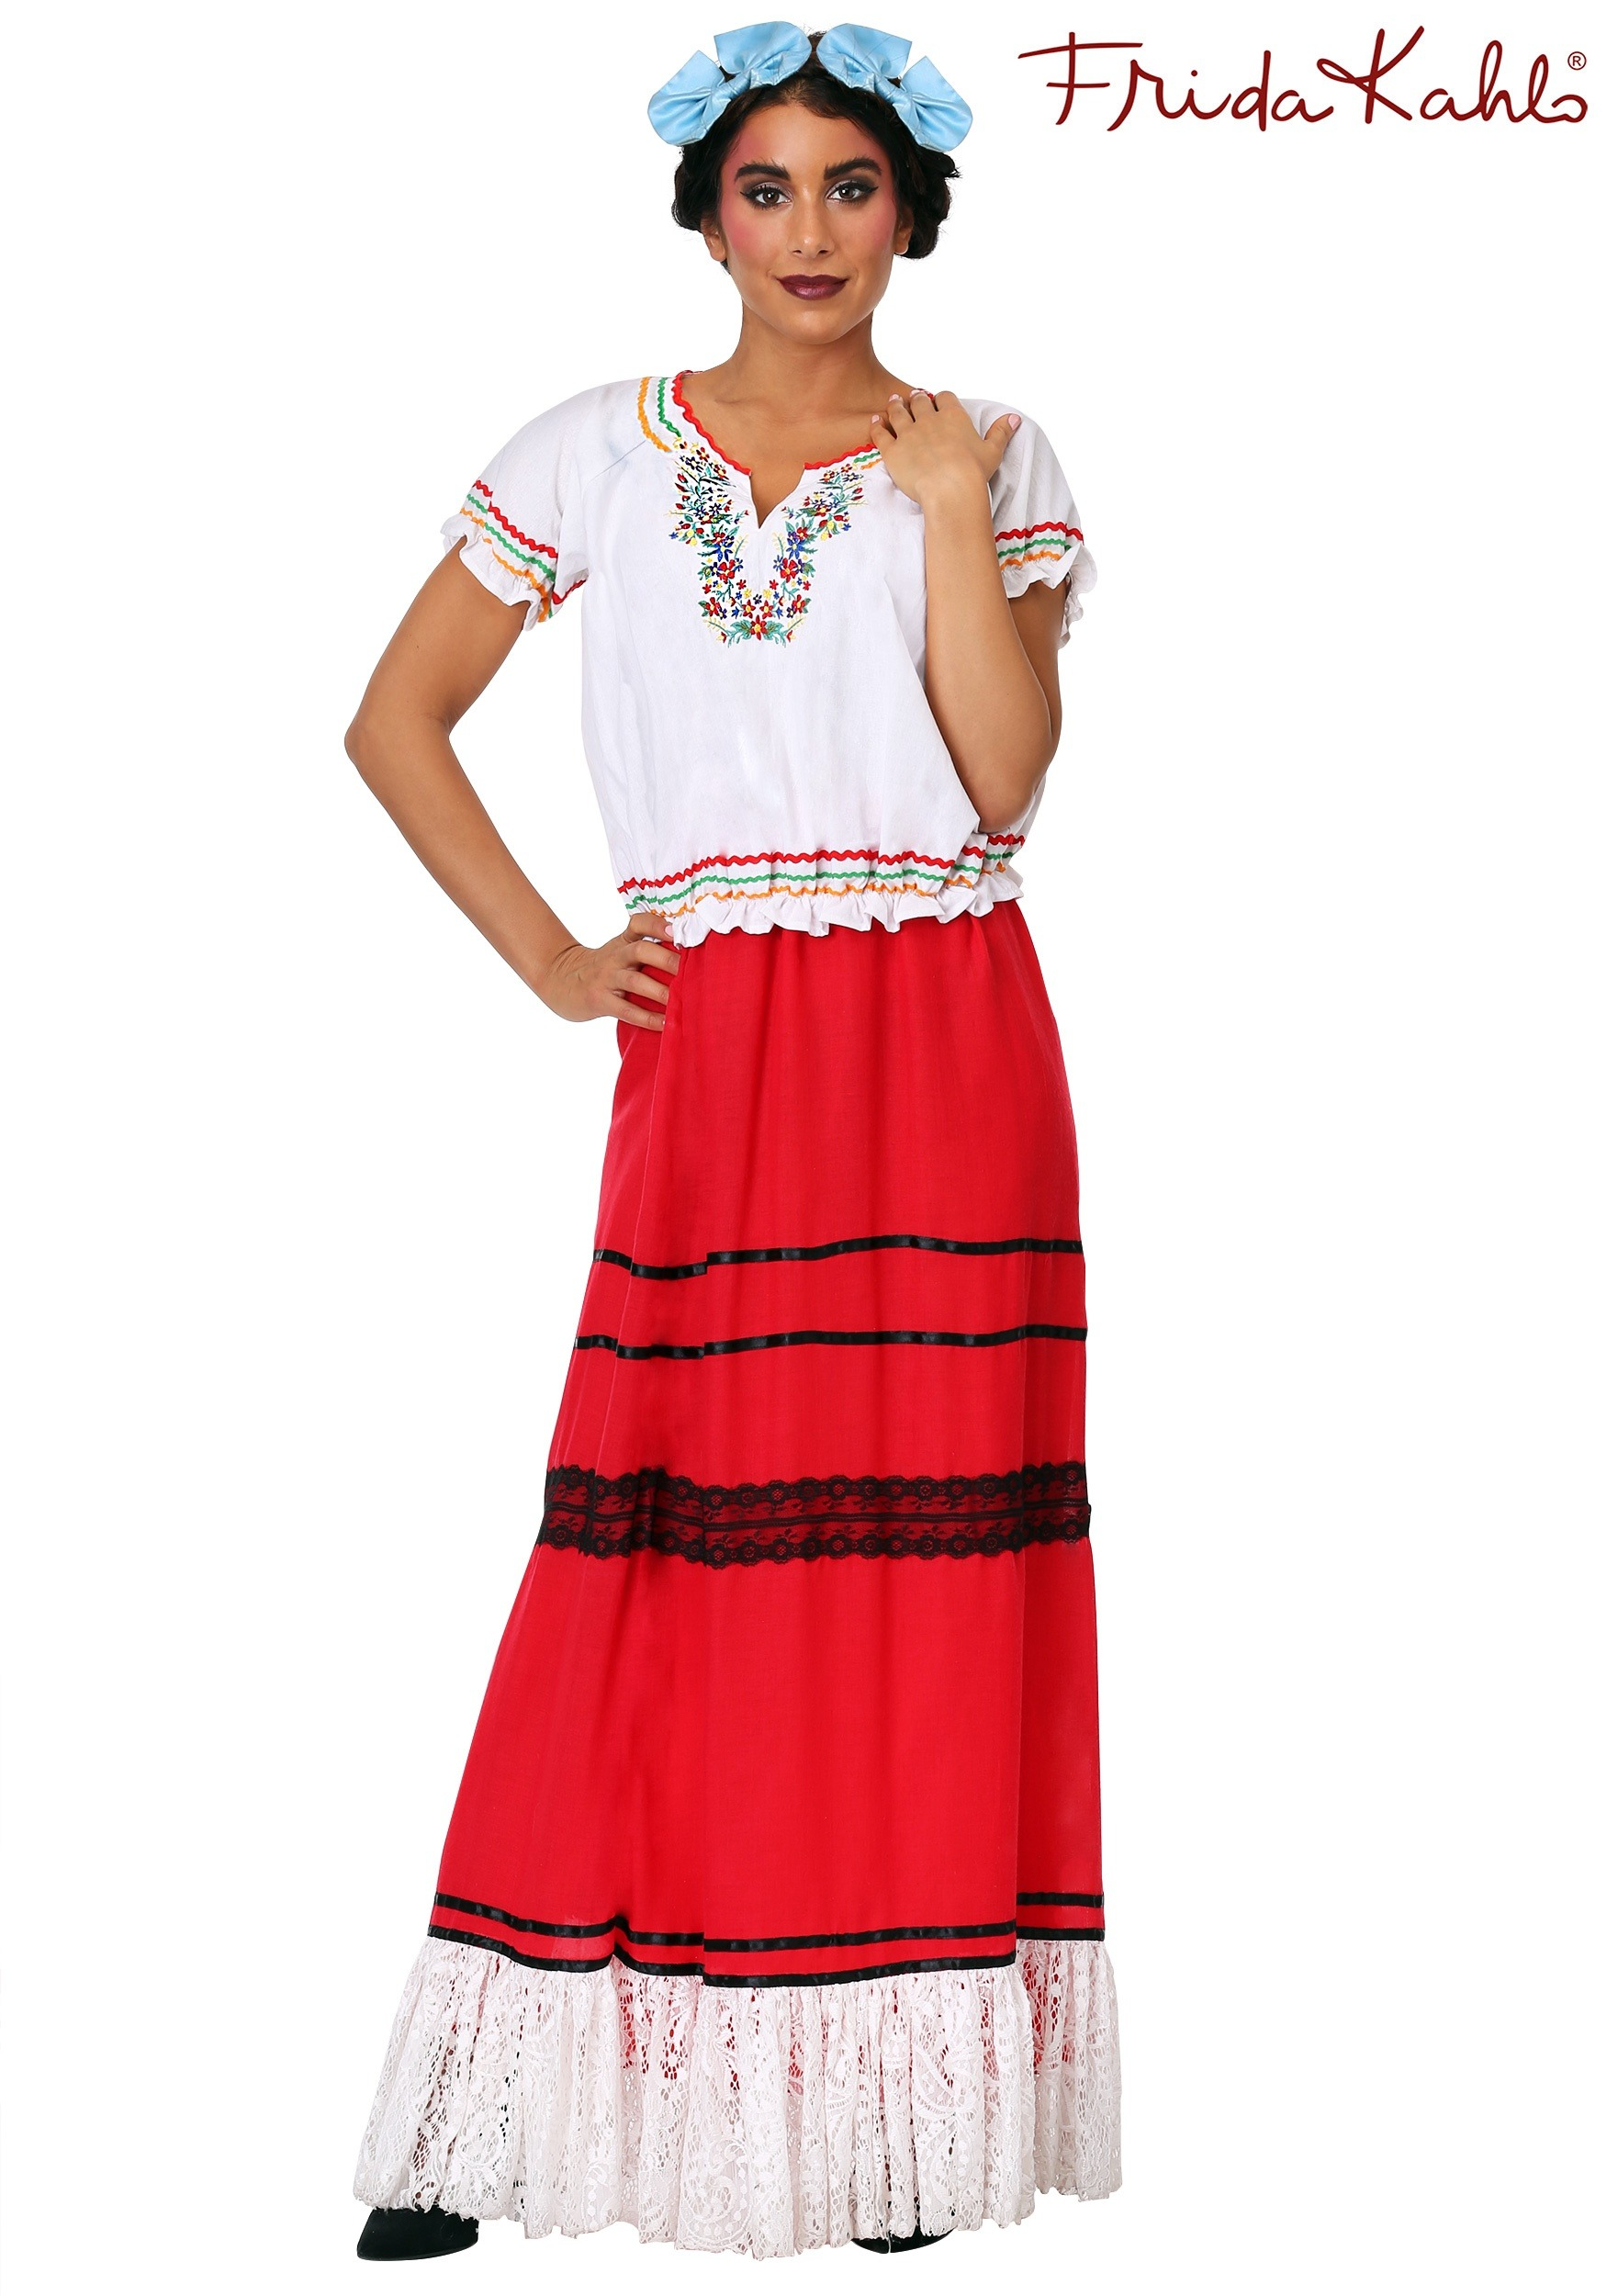 Red Frida Kahlo Women's Costume